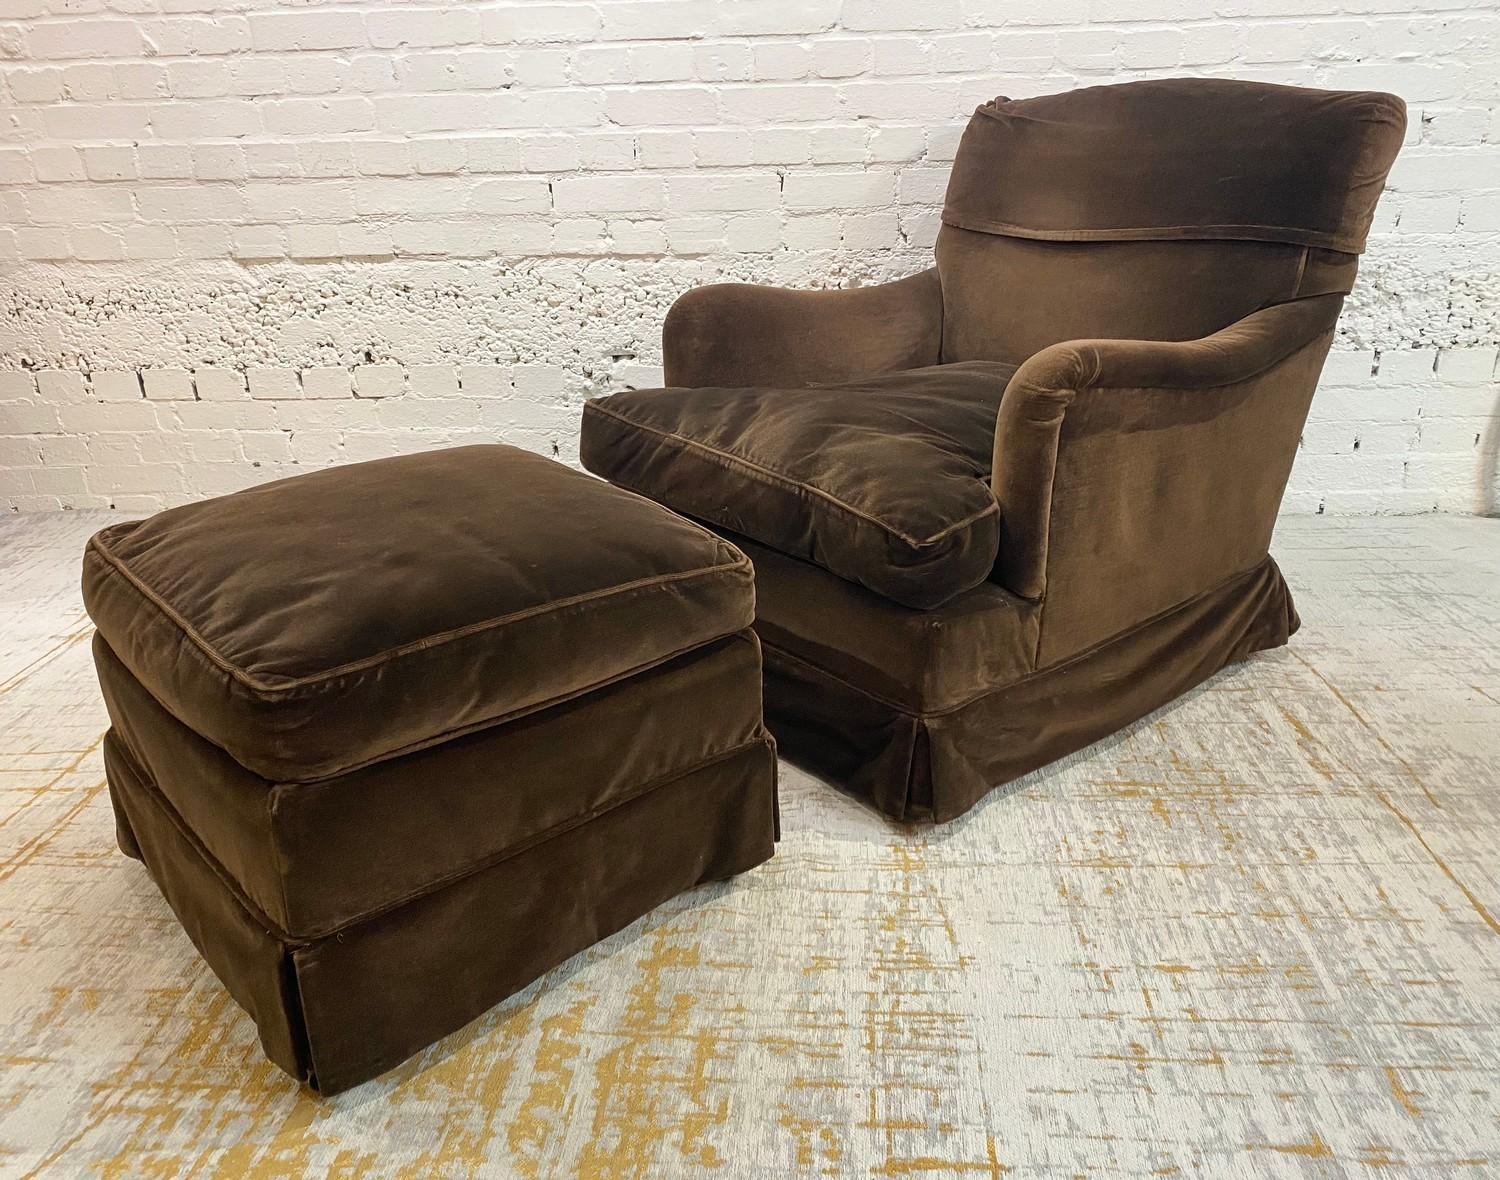 HOWARD AND SONS BRIDGEWATER ARMCHAIR, stamped 'Howard Chairs, 48 Sth Audley St London W.1 2385?,